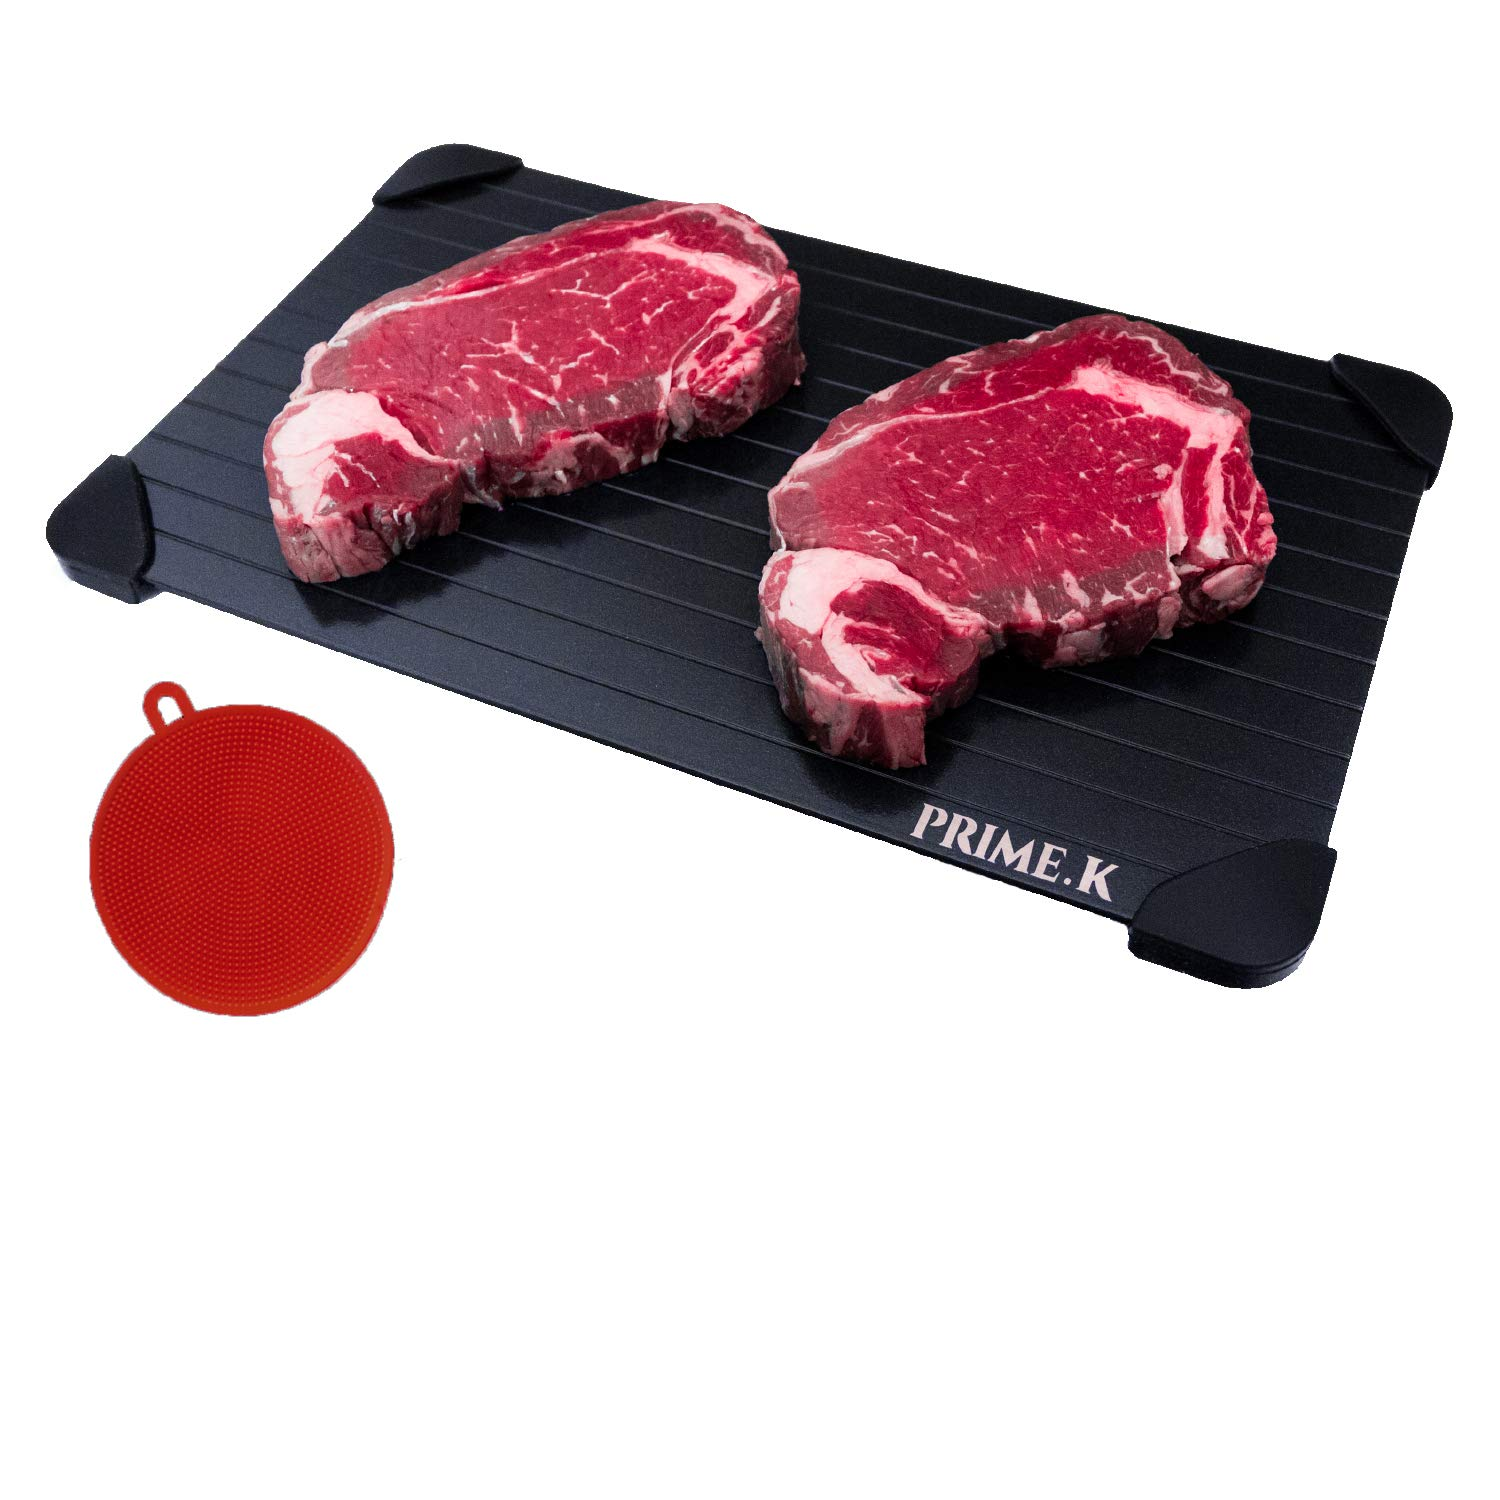 Defrosting Tray - Extra Large for Fast Thawing your Frozen Foods with Protective Silicone Corners. Eco Friendly - Uses no Electricity, Chemicals nor Microwave. Bonus Silicone Cleaning Sponge and eBook